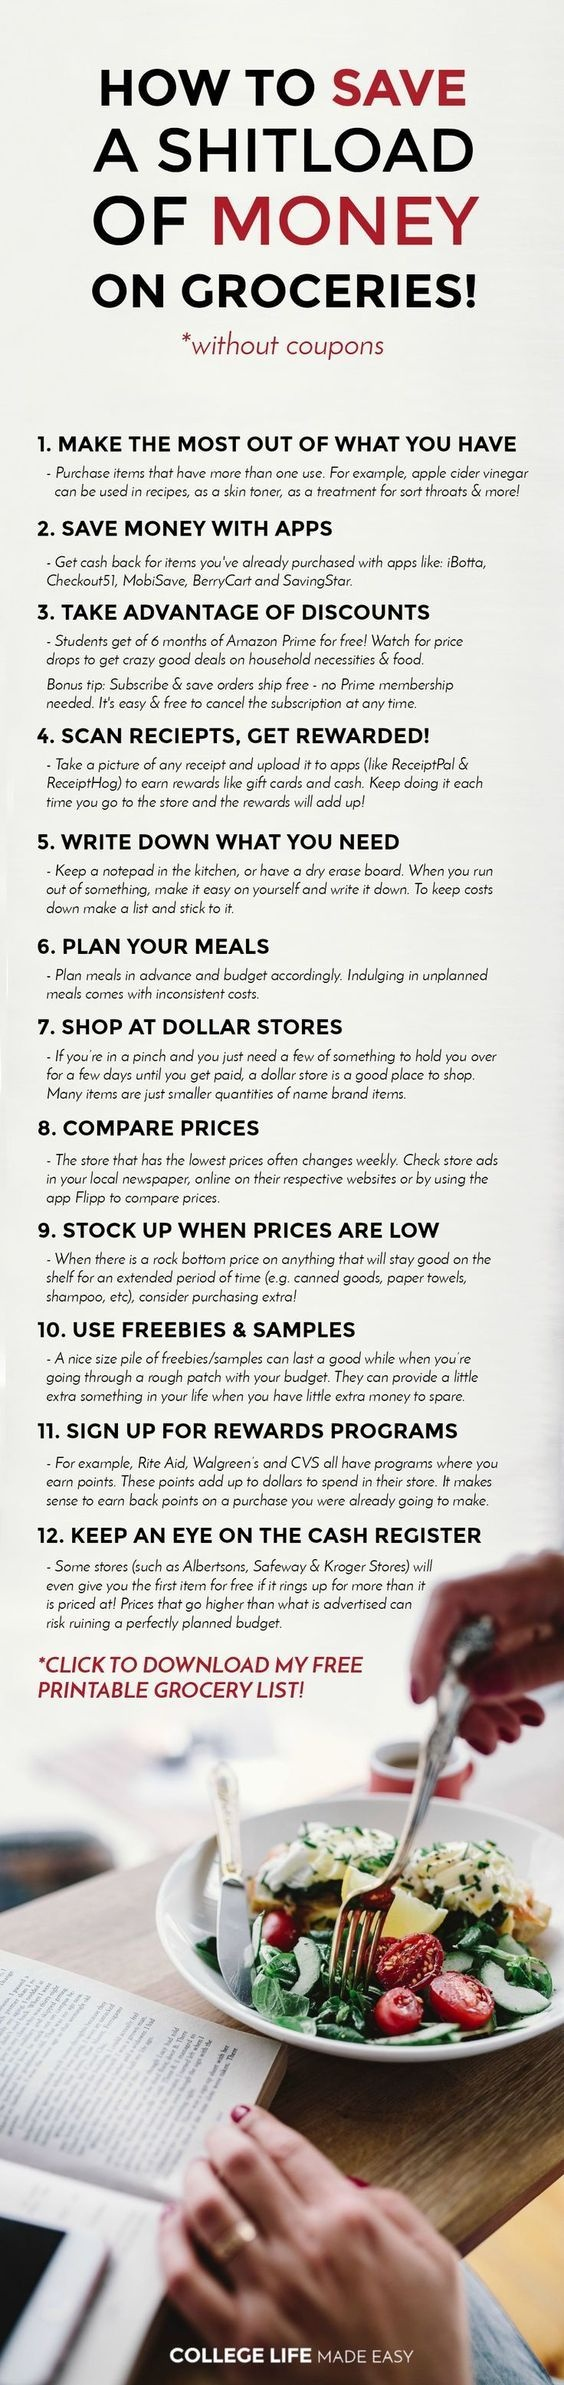 12 Ways For College Students To Save Money On Groceries (No Coupons - Free Printable Coupons Without Downloads